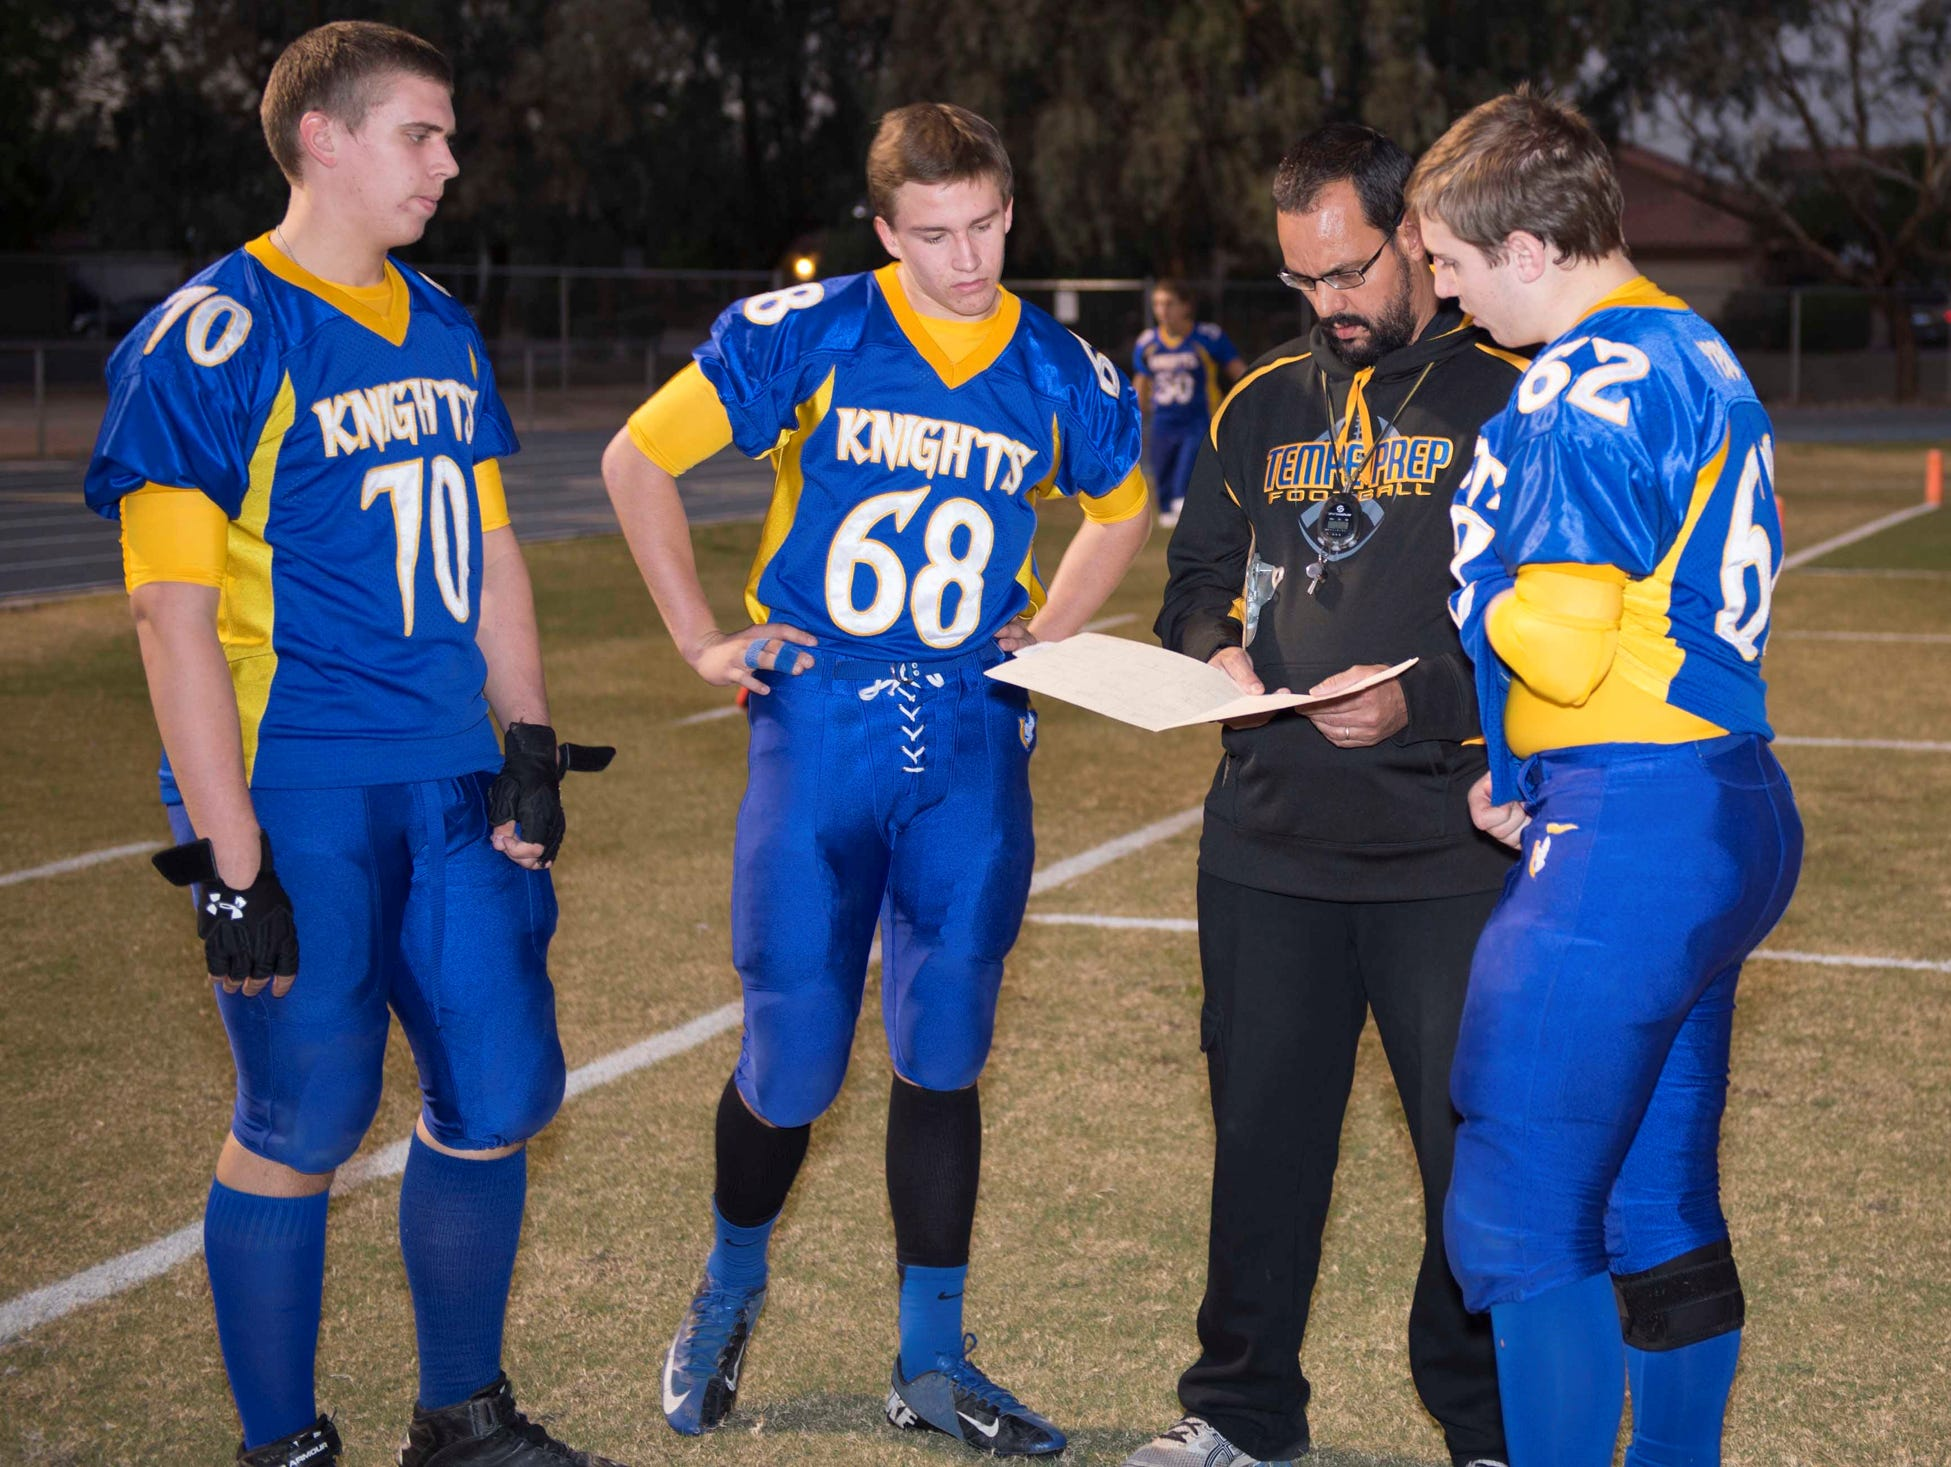 Tempe Prep football players (from left) Andrew Stough, Connor Woltz and Christian Gaylor huddle around coach Tommy Brittain.